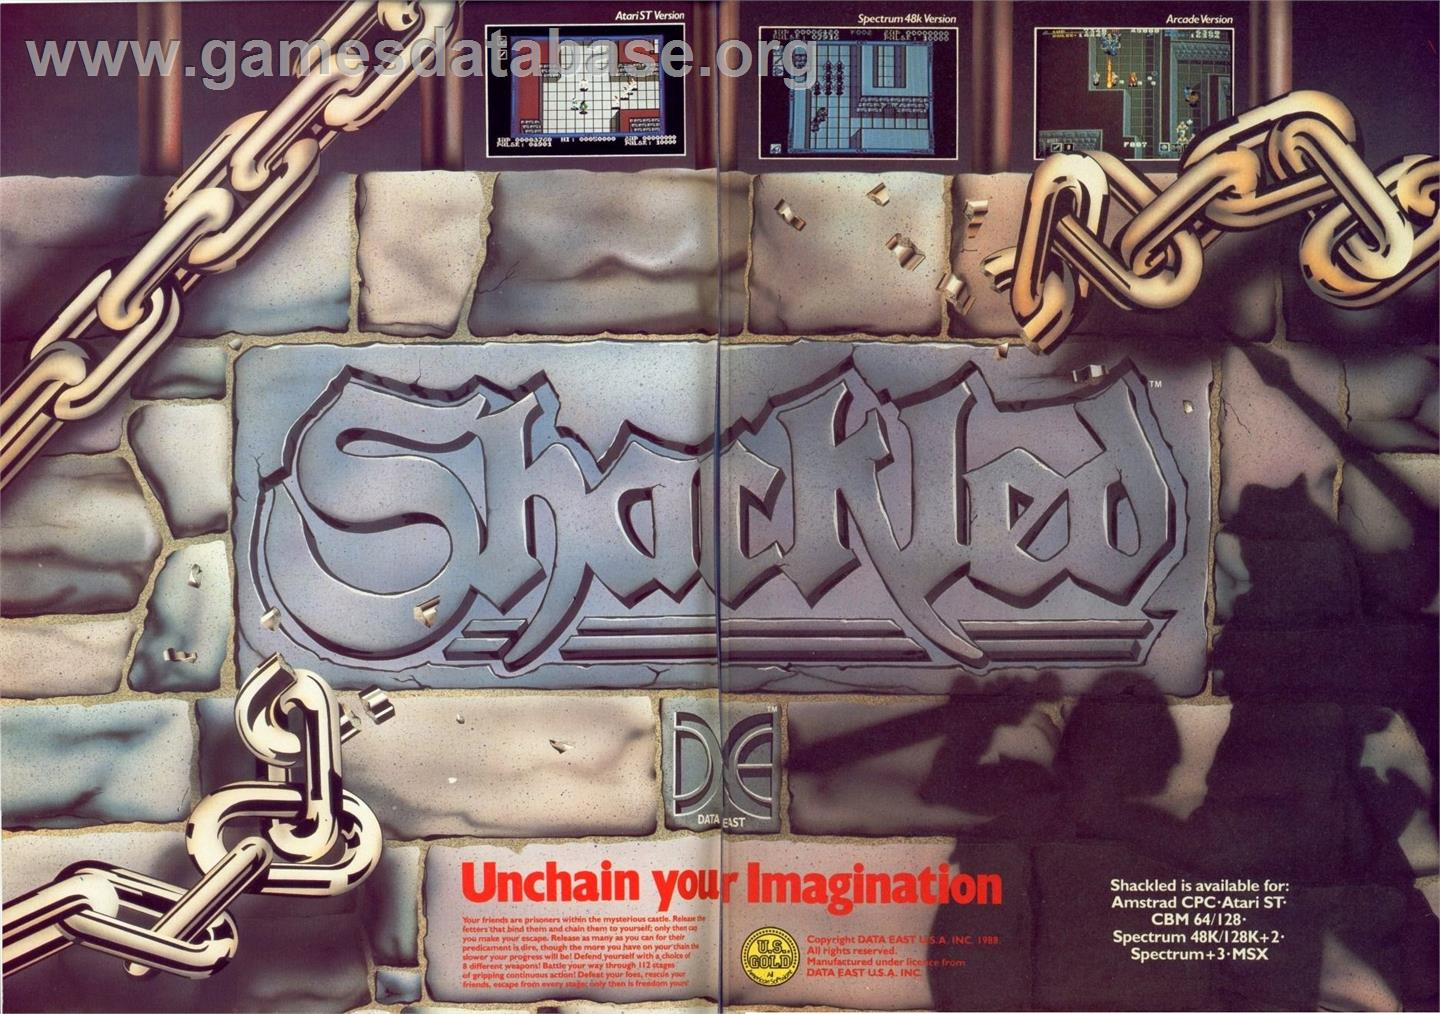 Shackled - Commodore 64 - Artwork - Advert